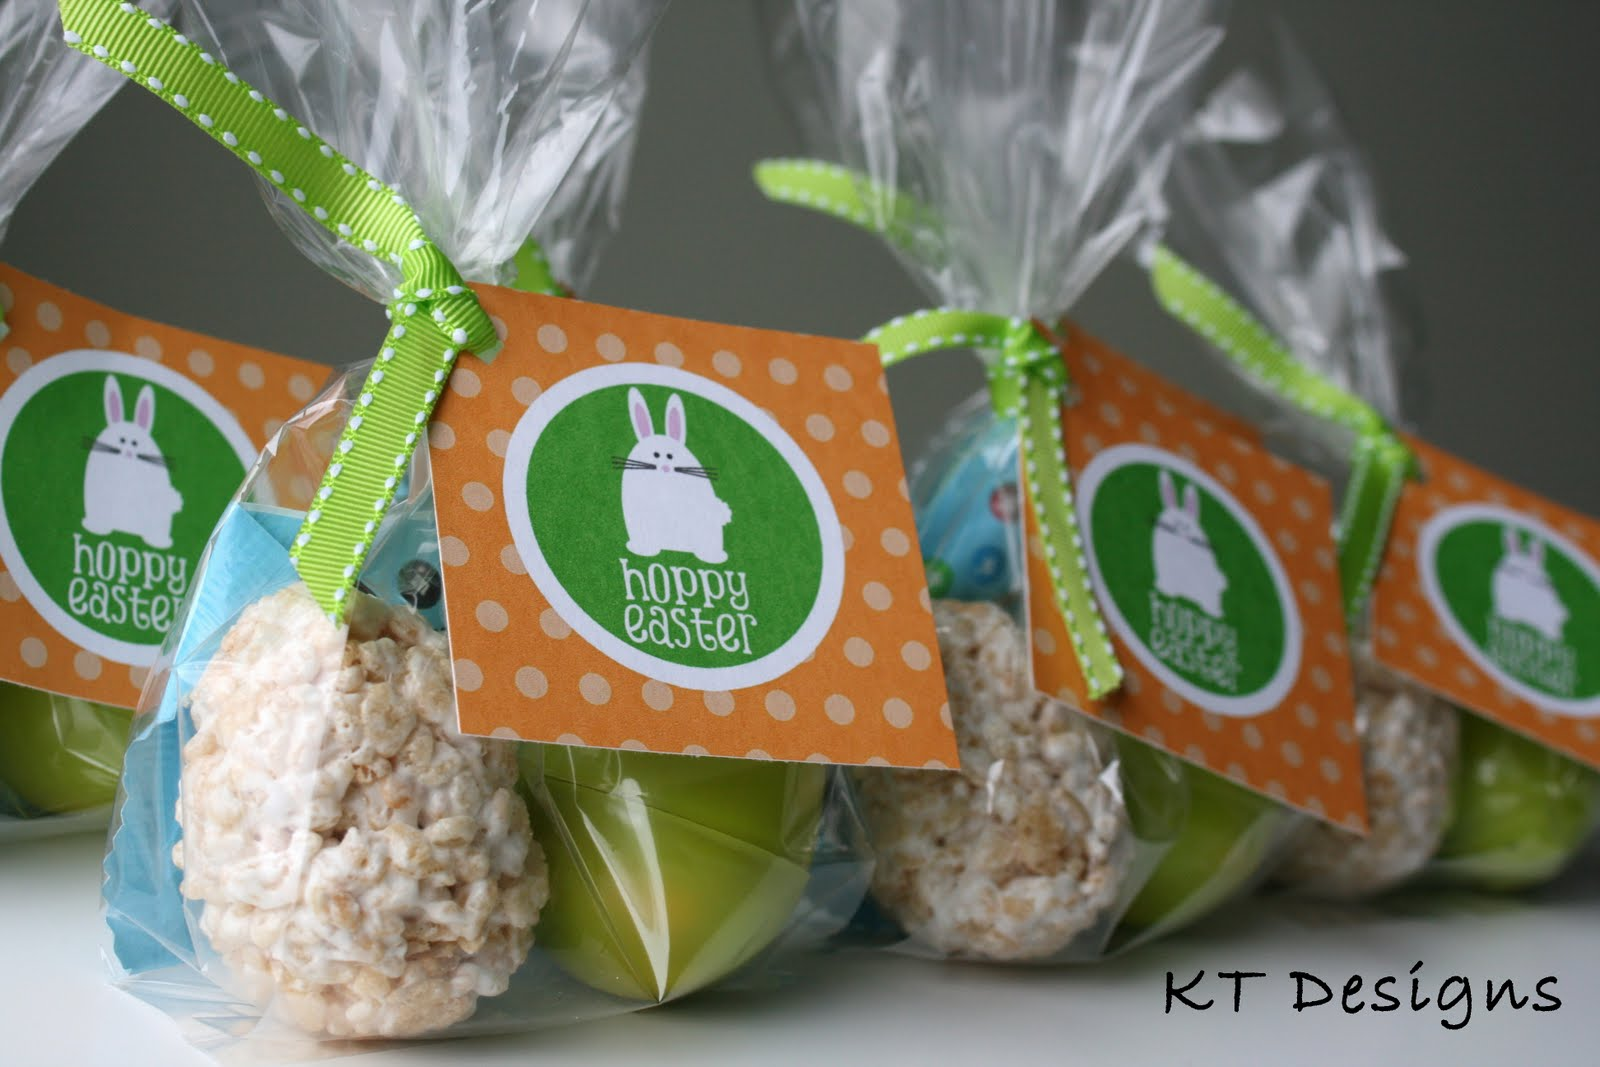 Kt designs easter goodie bags easter goodie bags negle Choice Image